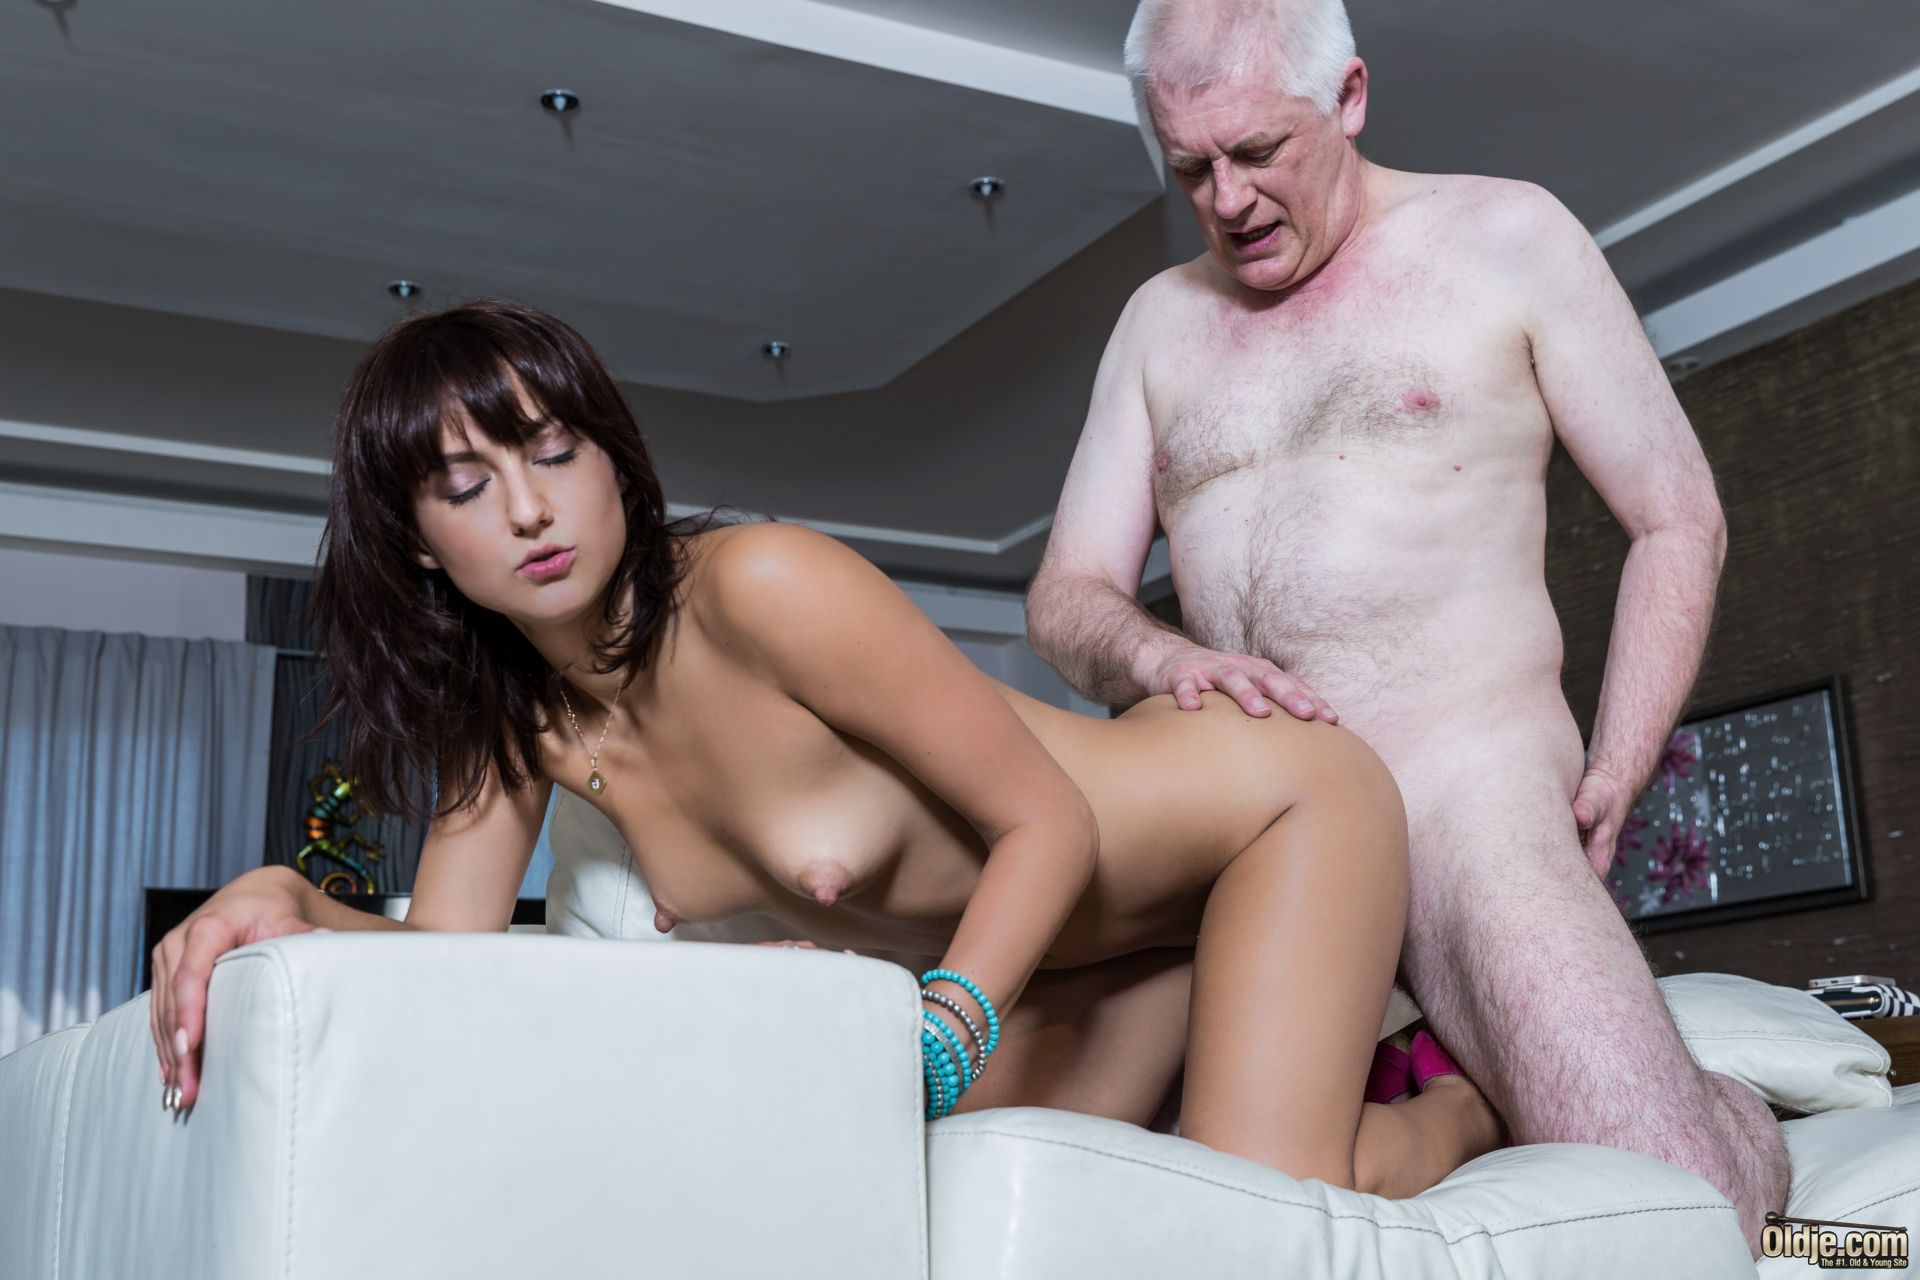 blow job and pussy for grandpa